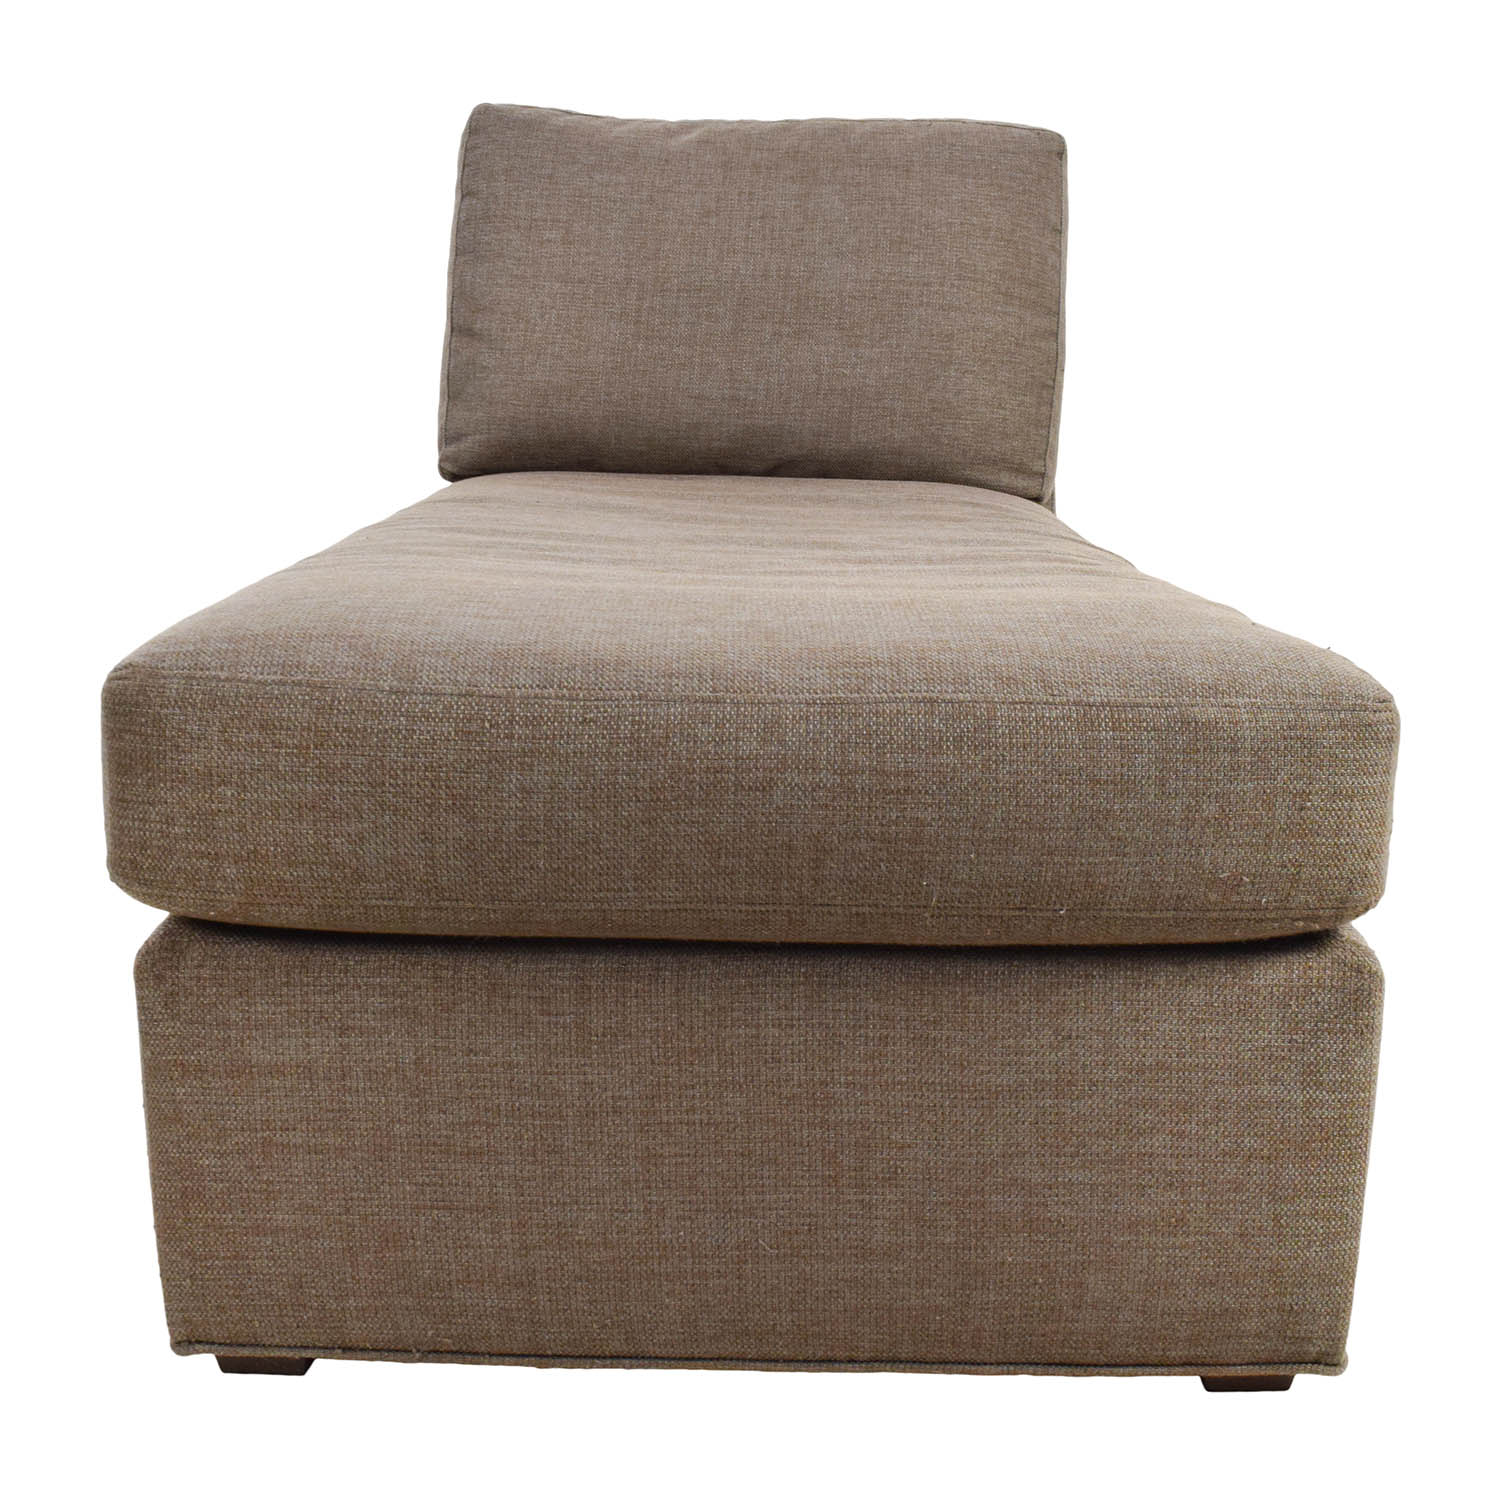 Crate and Barrel Crate & Barrel Brown Chaise Lounge discount